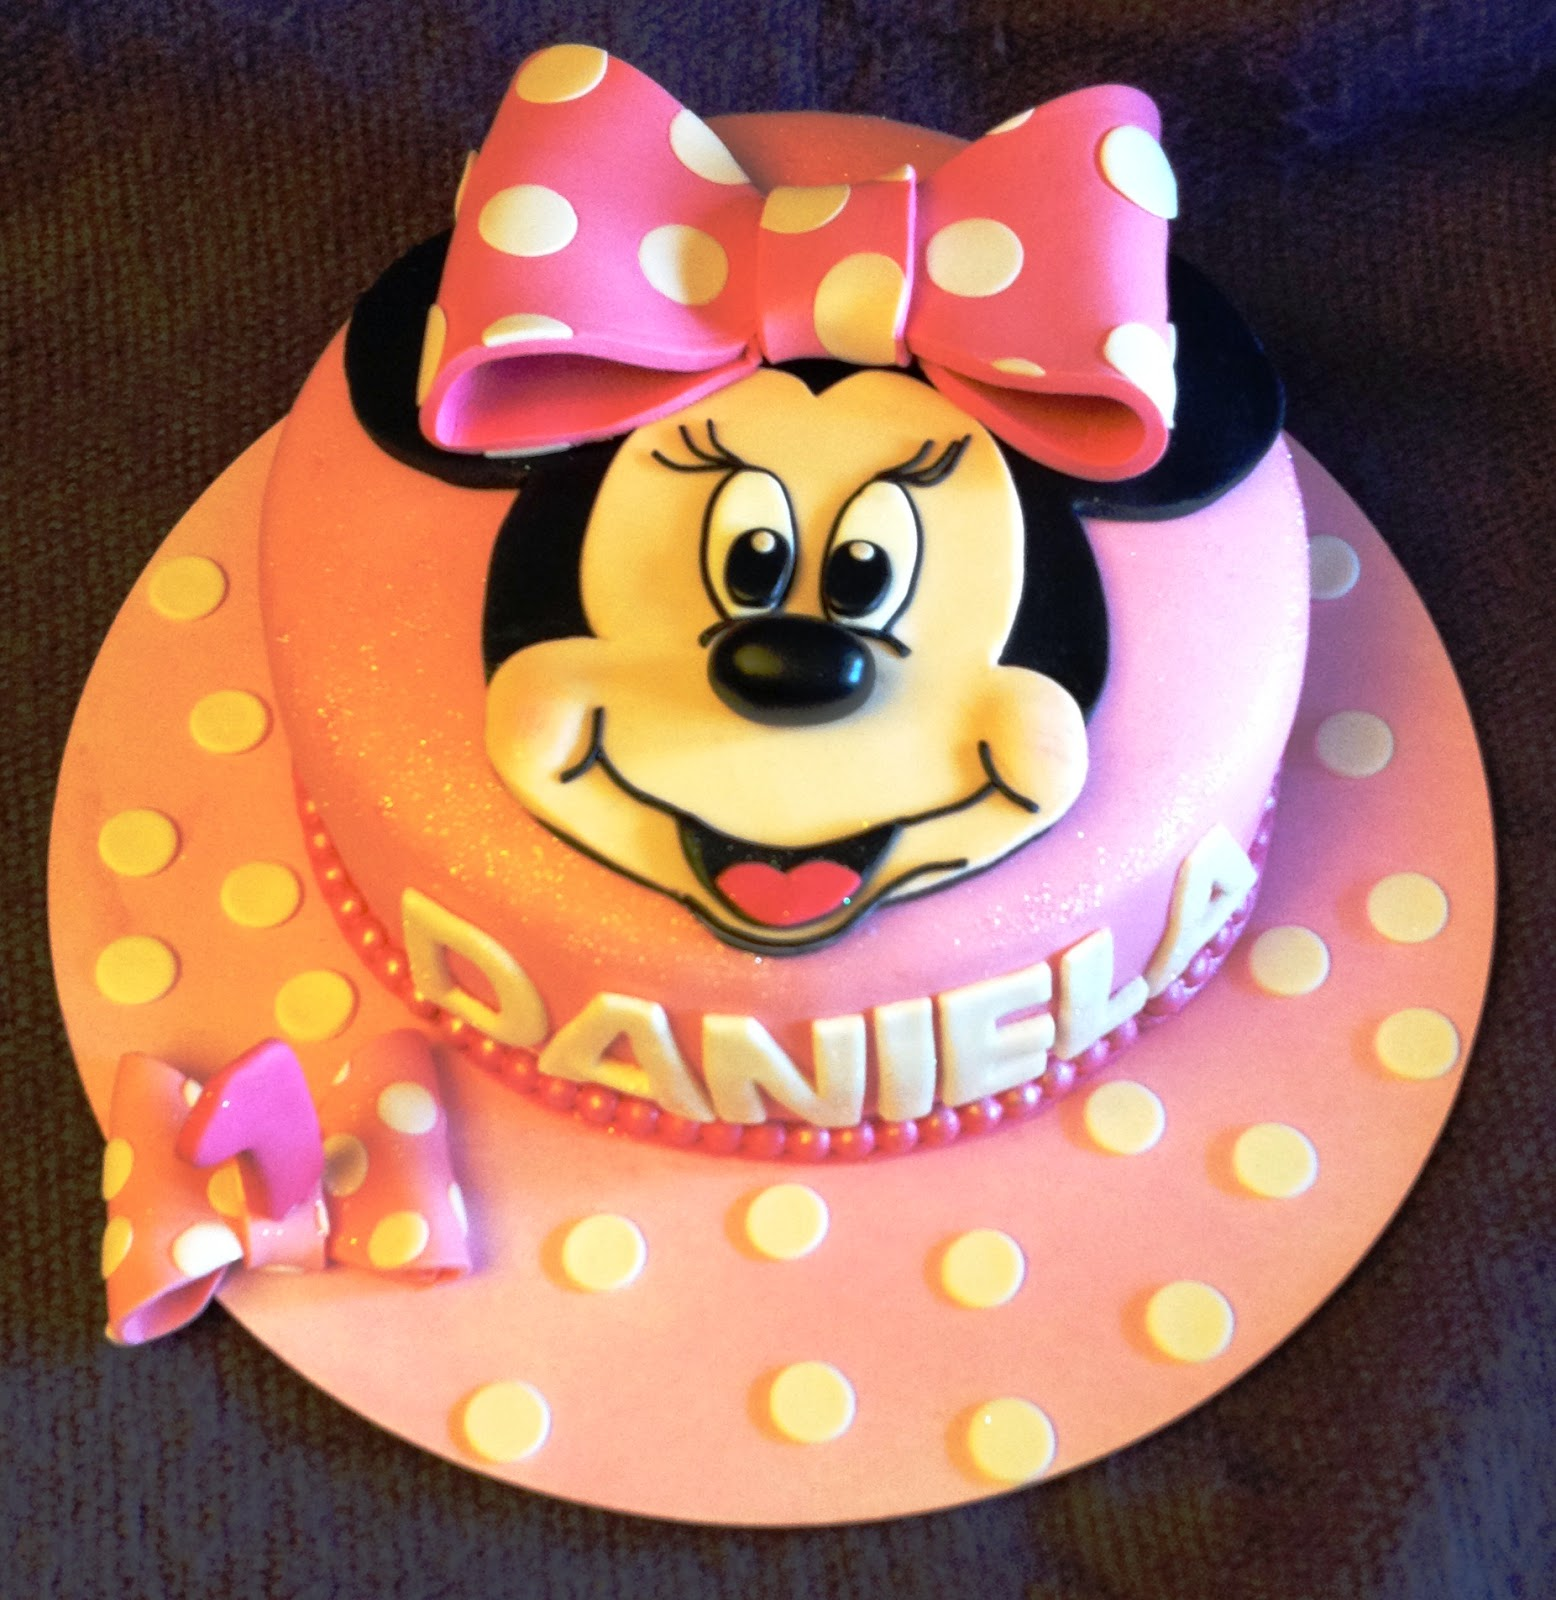 tarta fondant, tarta decorada; tarta minnie, tarta minnie fondant, tarta decorada minnie